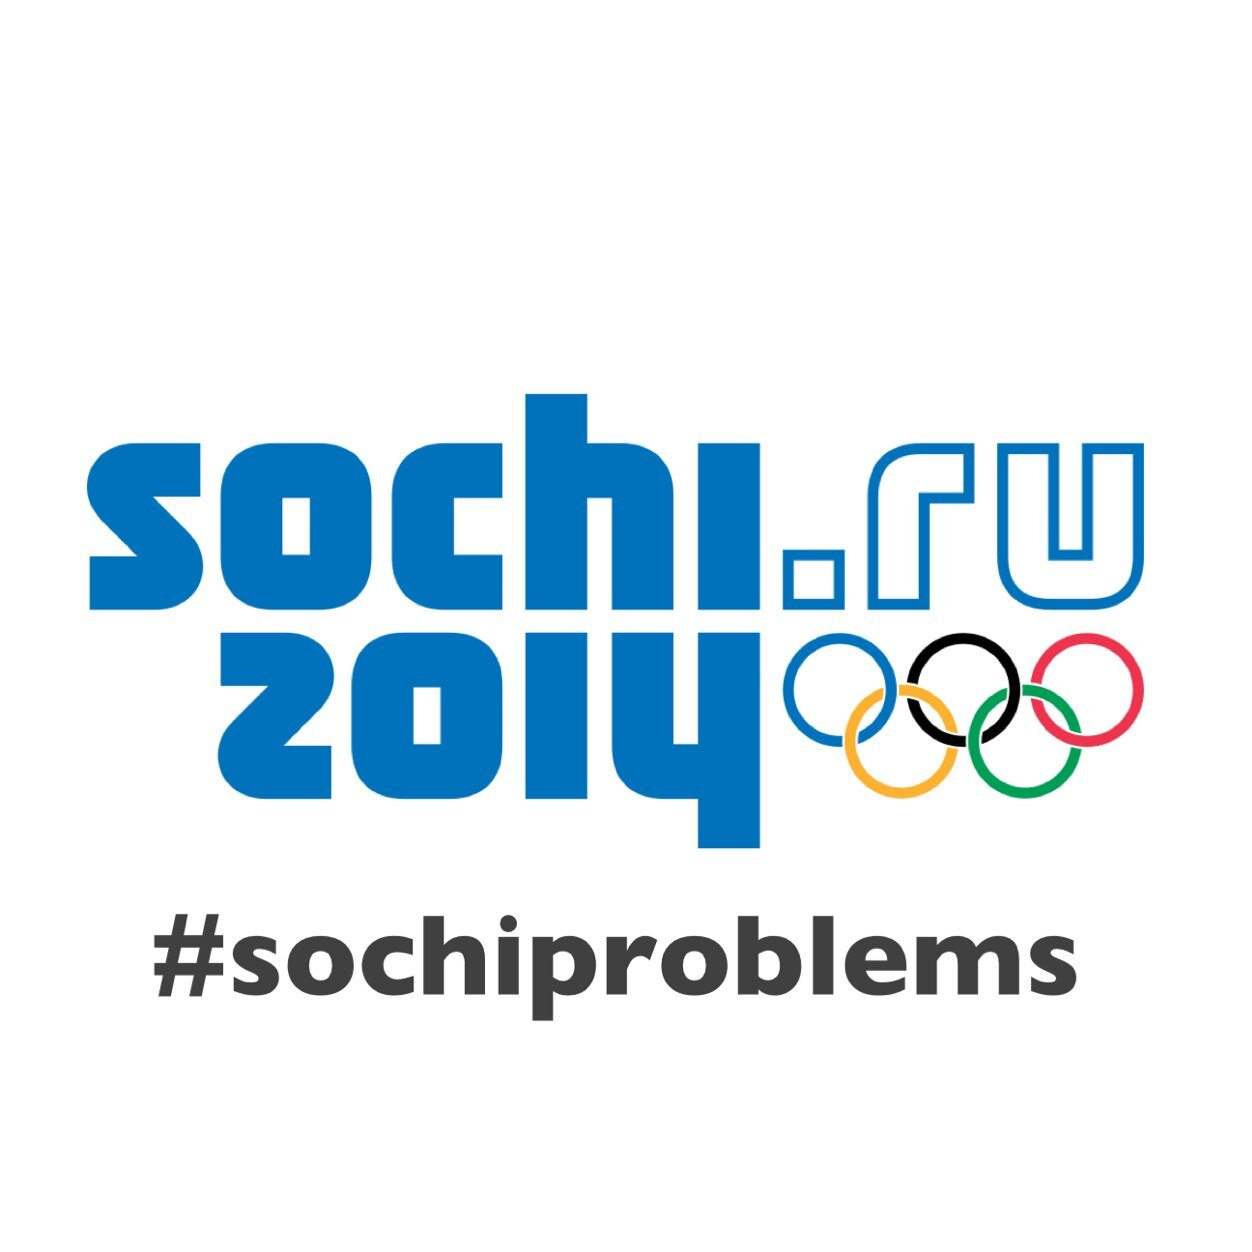 Sochi Problems SochiProblems Twitter - Sochi problems tweets